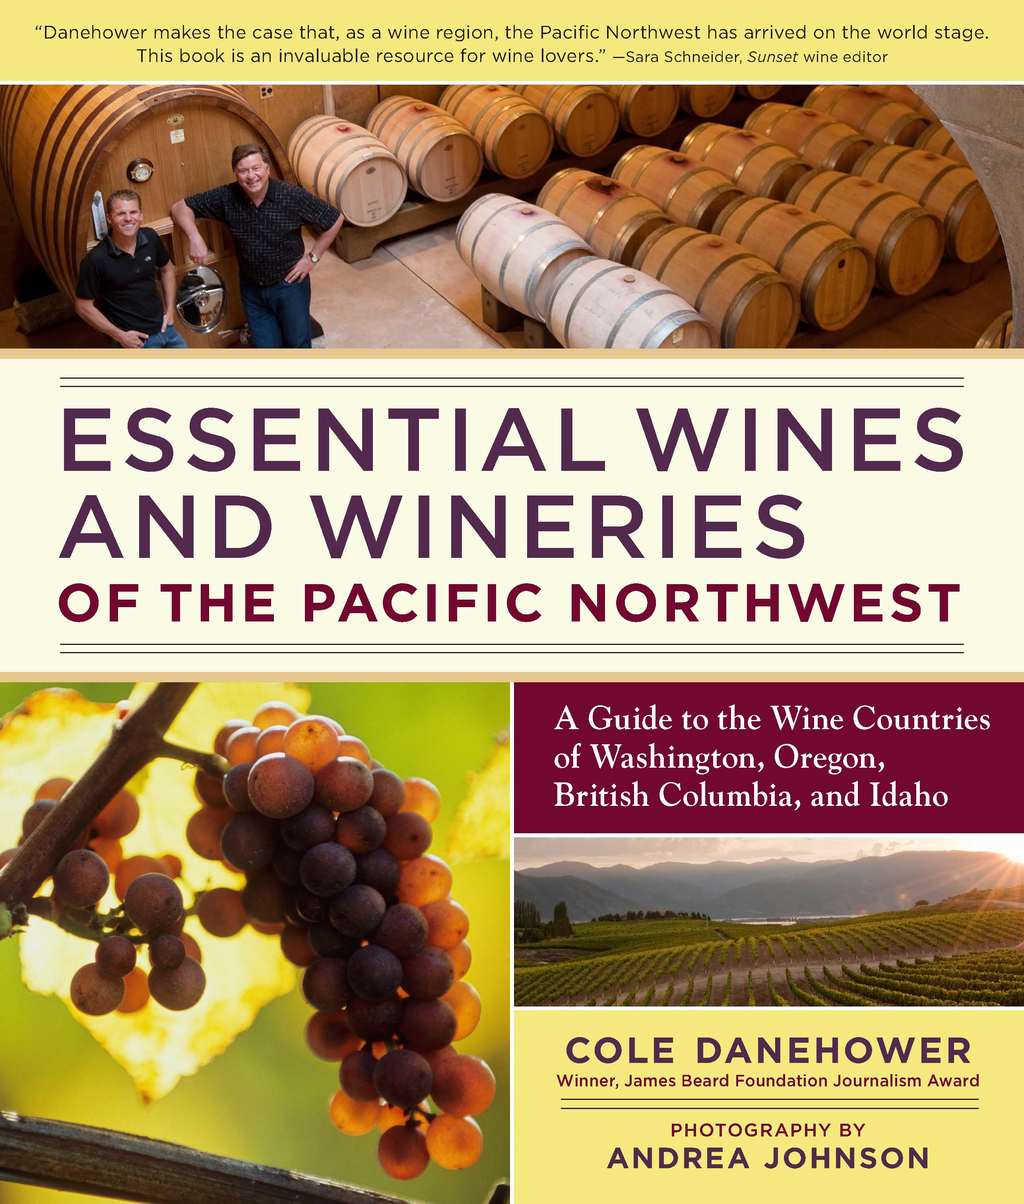 Essential Wines and Wineries of the Pacific Northwest By: Cole Danehower